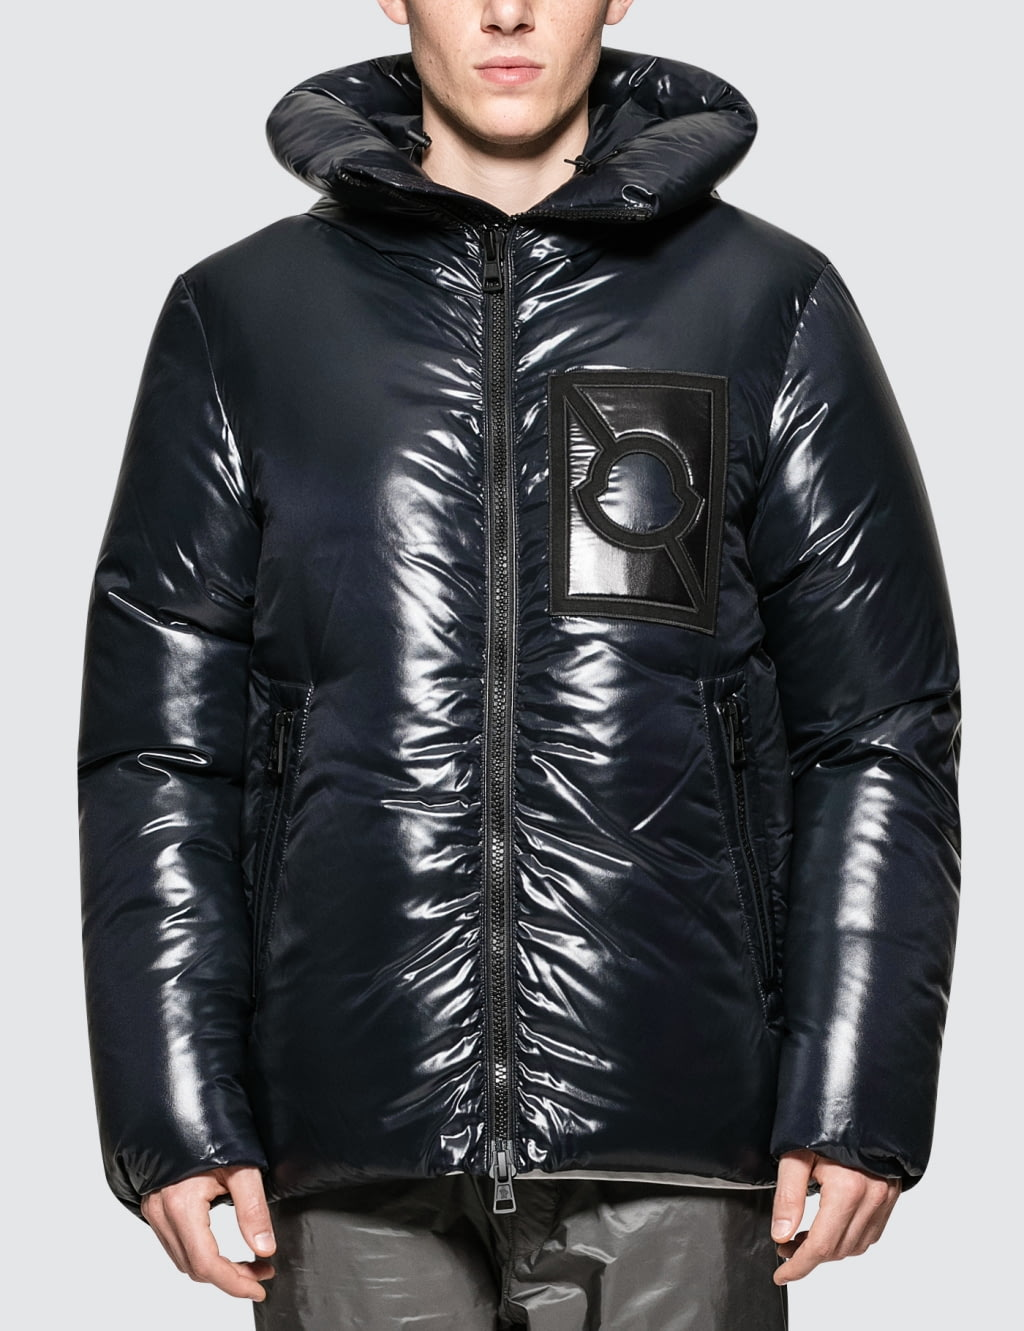 moncler craig green coat